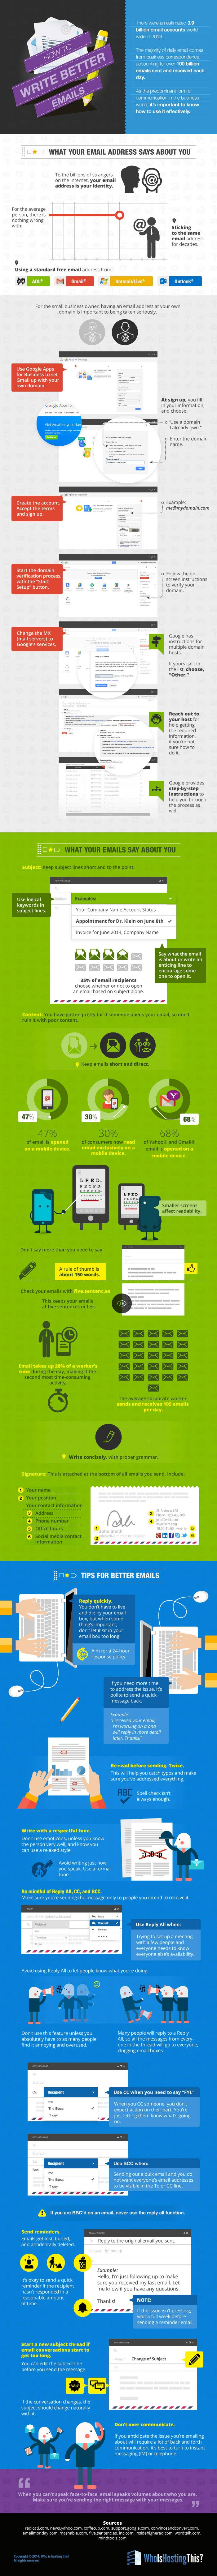 1410362476-how-write-better-emails-infographic